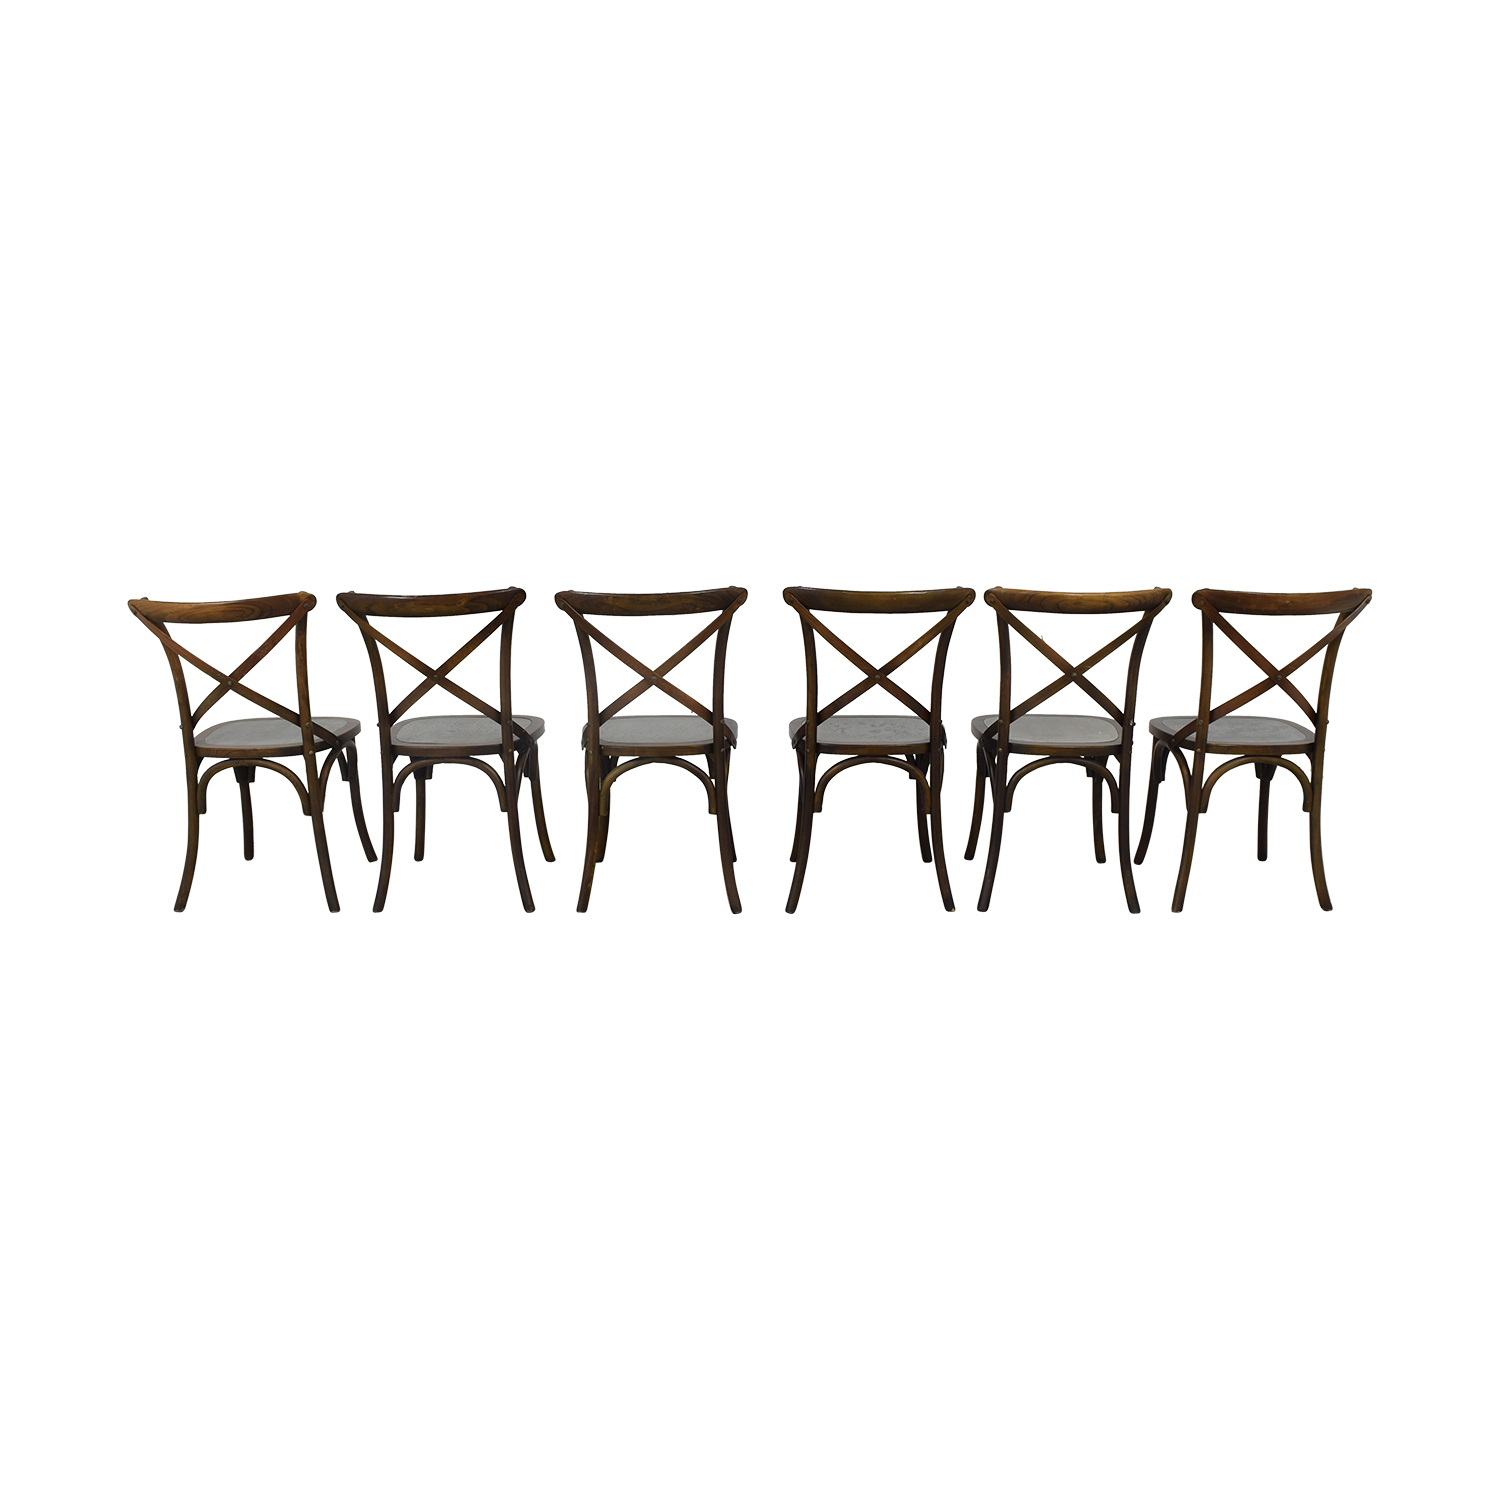 Sitcom Furniture Sitcom Furniture Wood and Metal Dining Chairs coupon